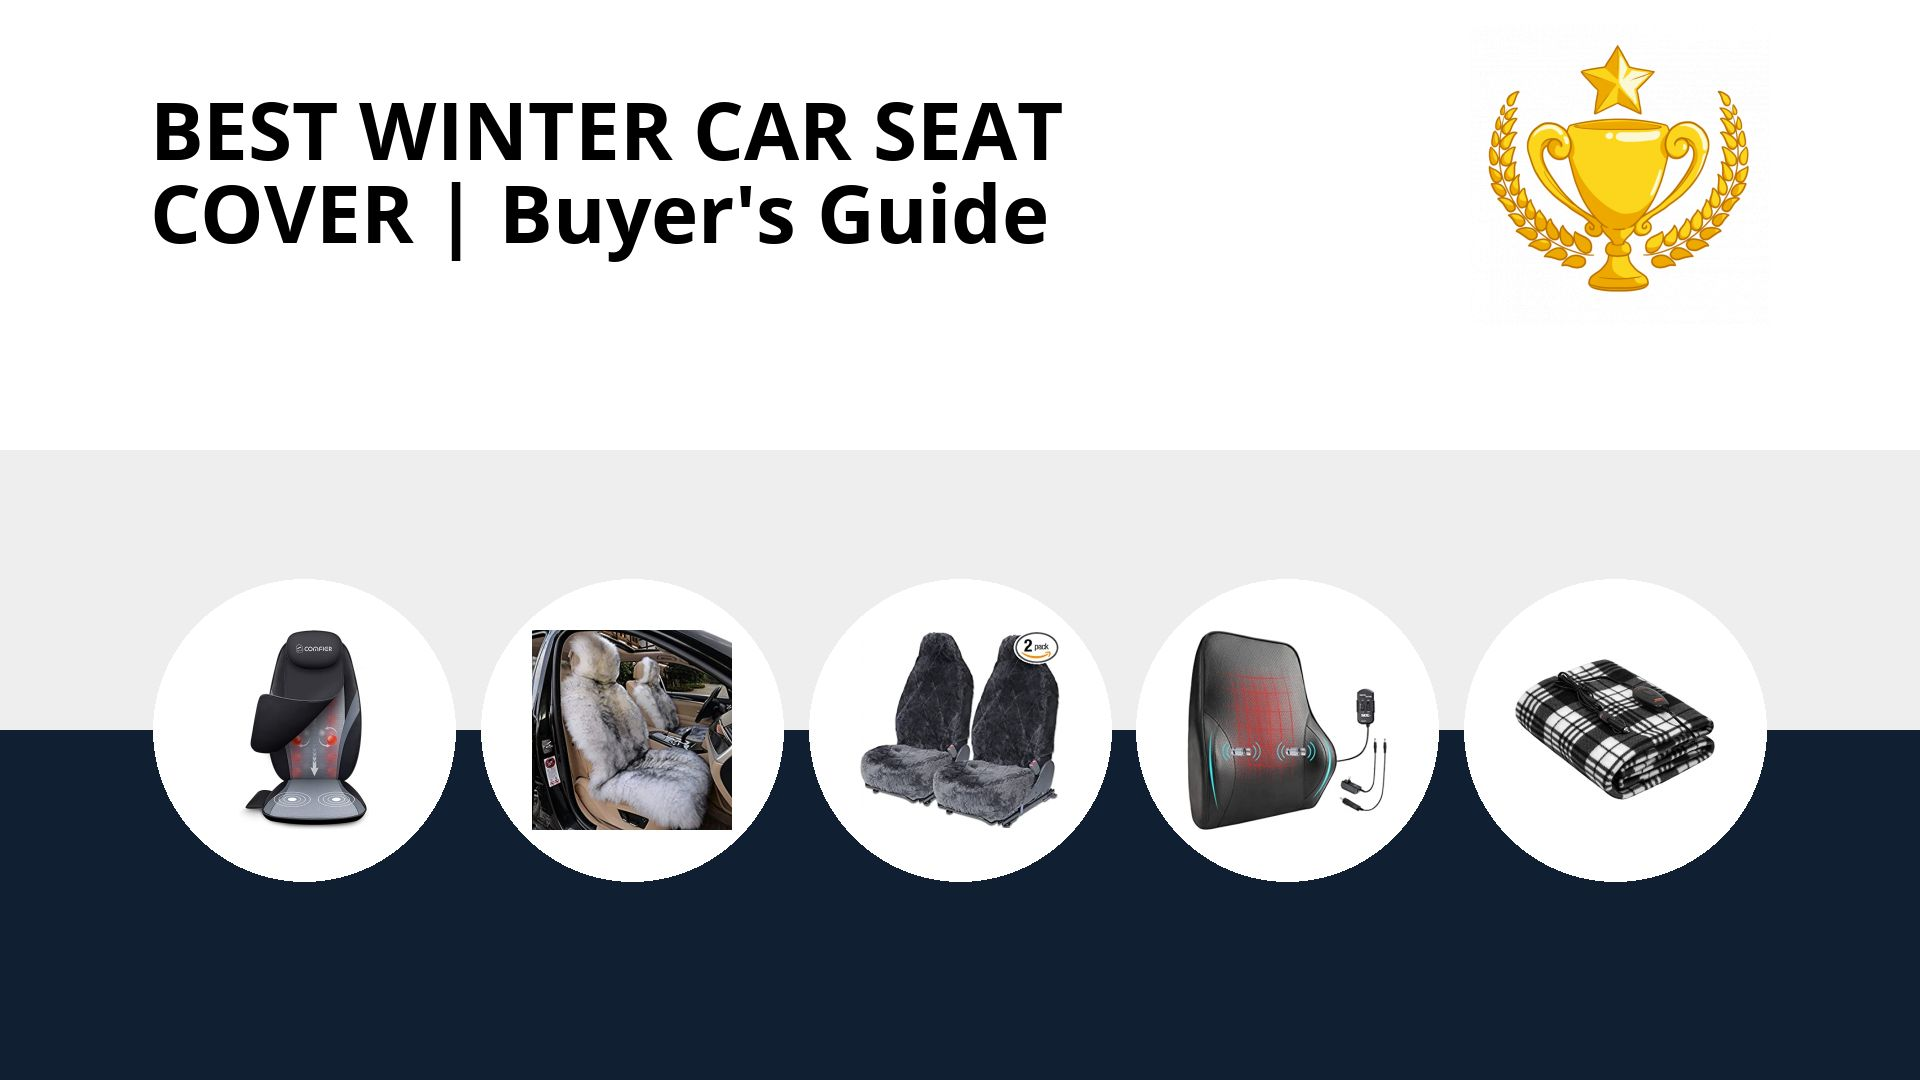 Best Winter Car Seat Cover: image